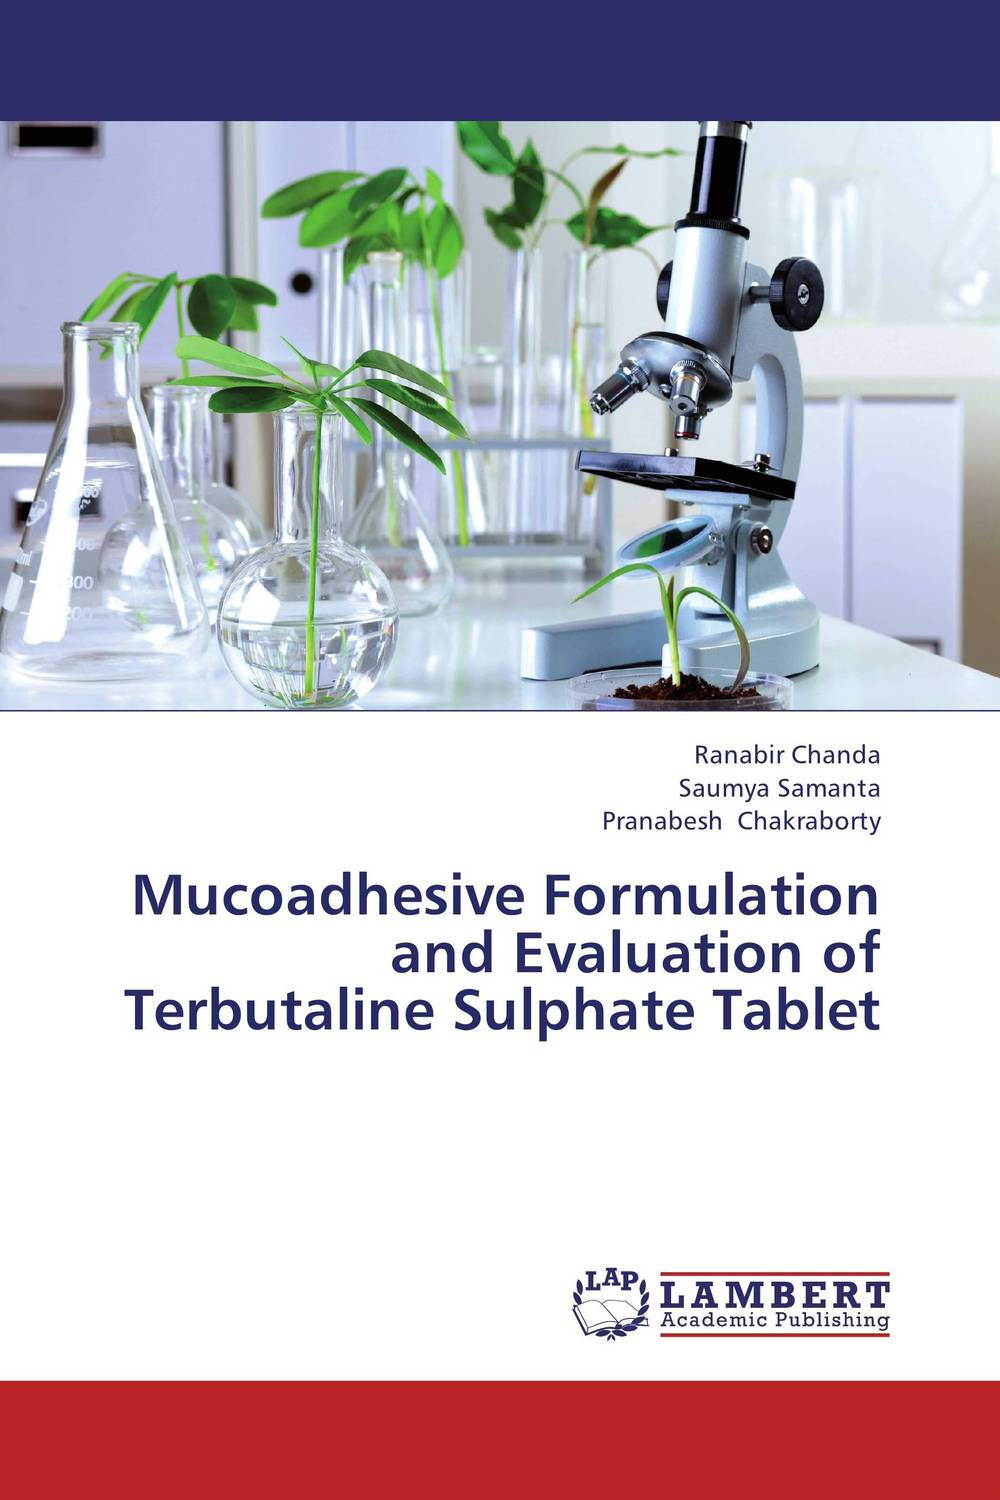 Mucoadhesive Formulation and Evaluation of Terbutaline Sulphate Tablet formulation and evaluation of mucoadhesive buccal patches of labetalol page 8